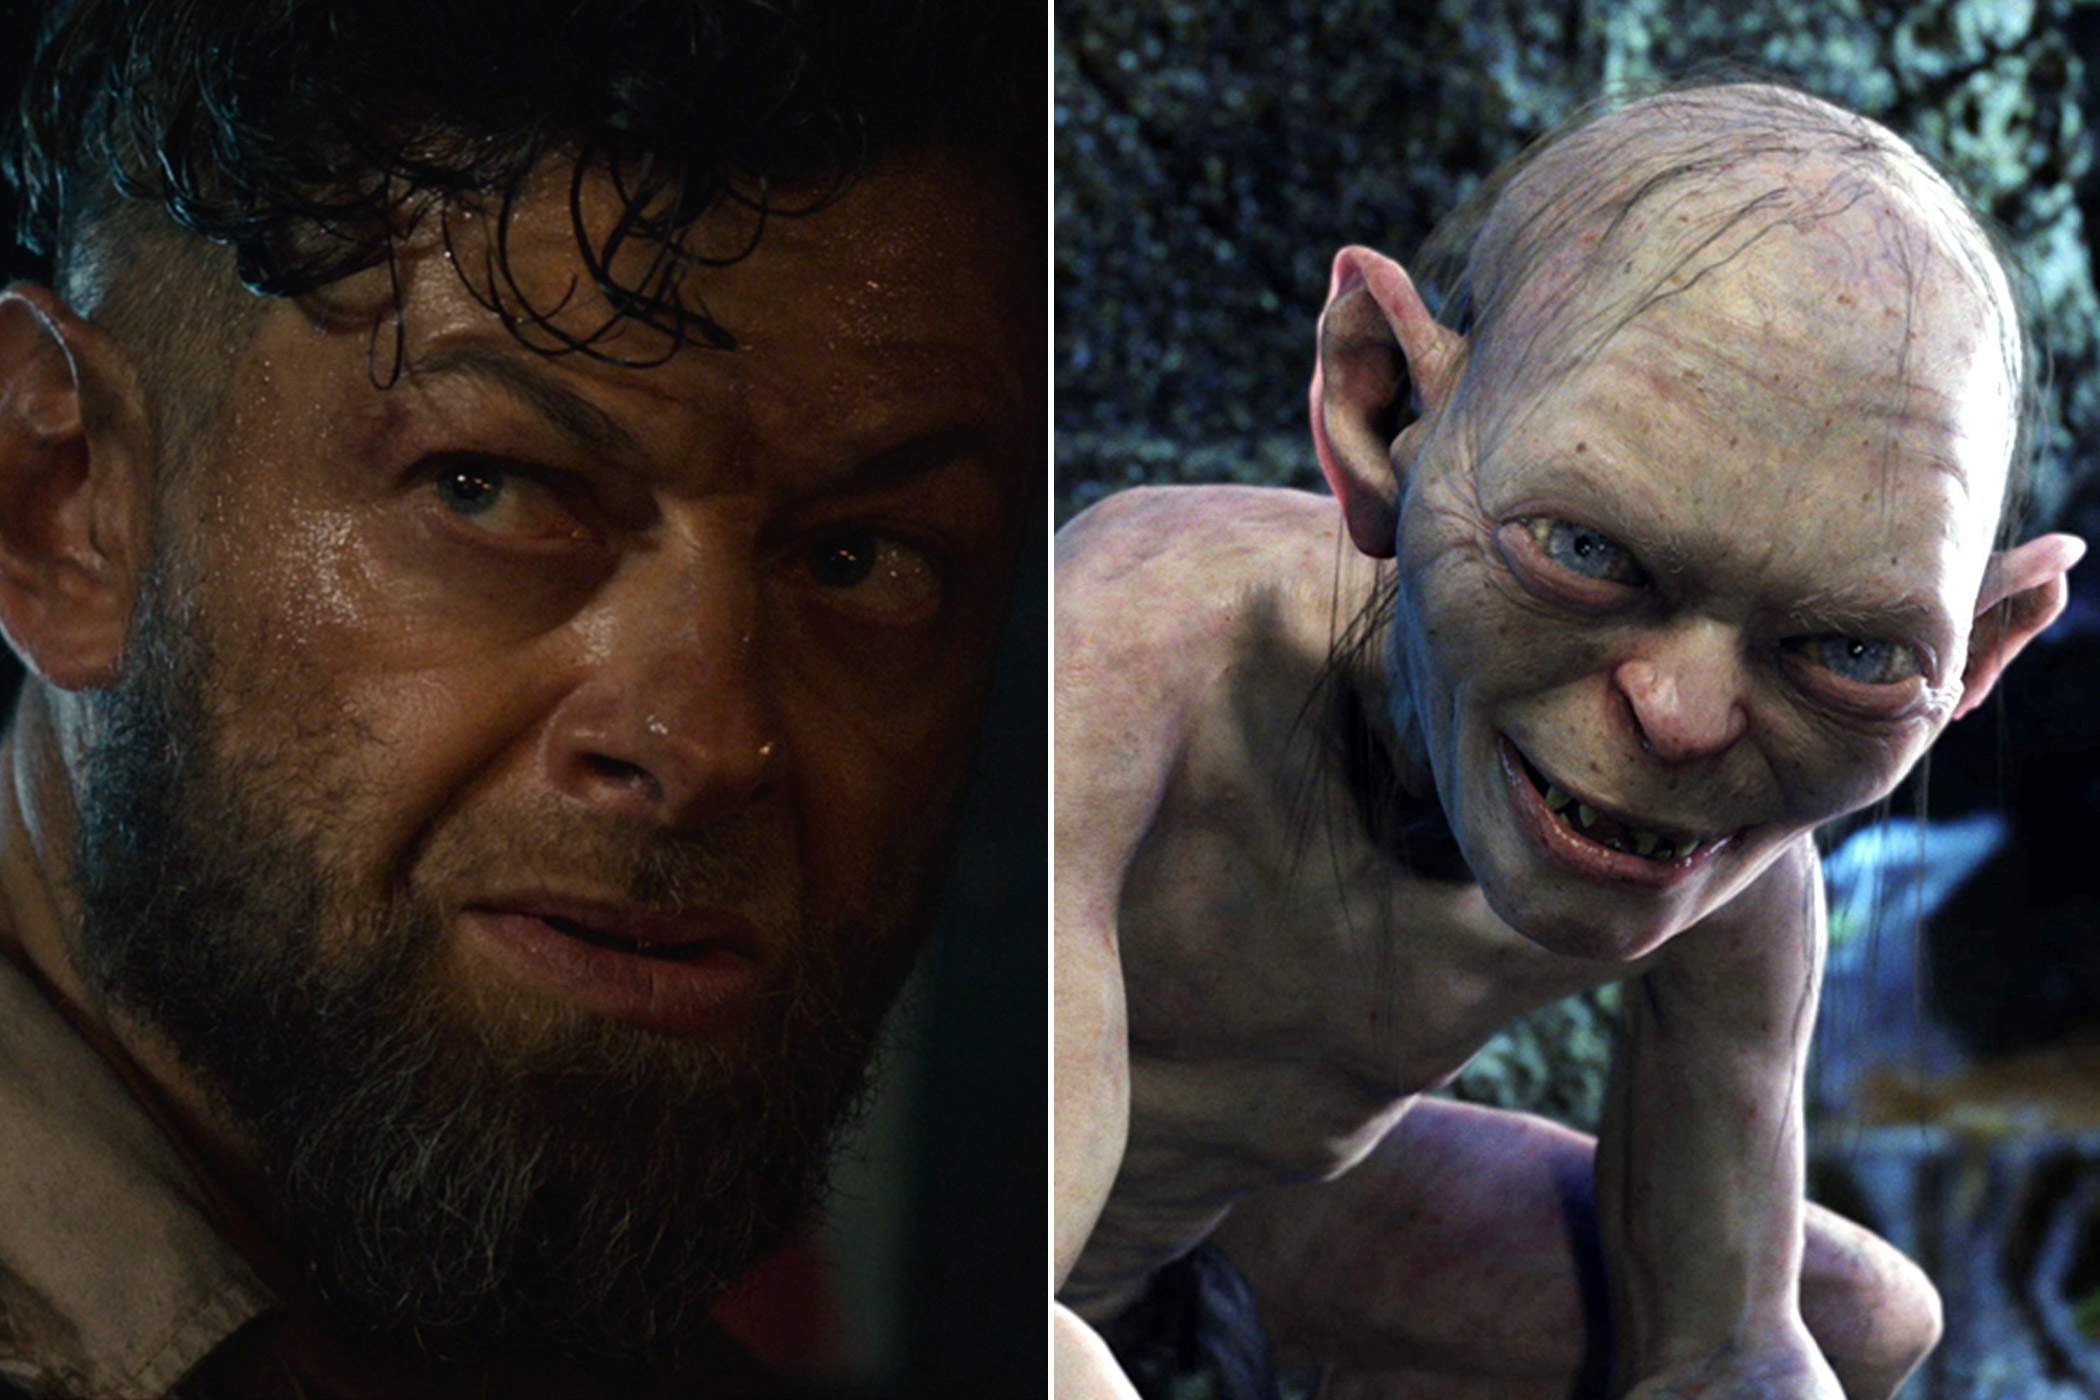 Bonus: Andy Serkis as Ulysses Klaue in <i>The Avengers: Age of Ultron</i> and Gollum in <i>The Lord of the Rings</i>